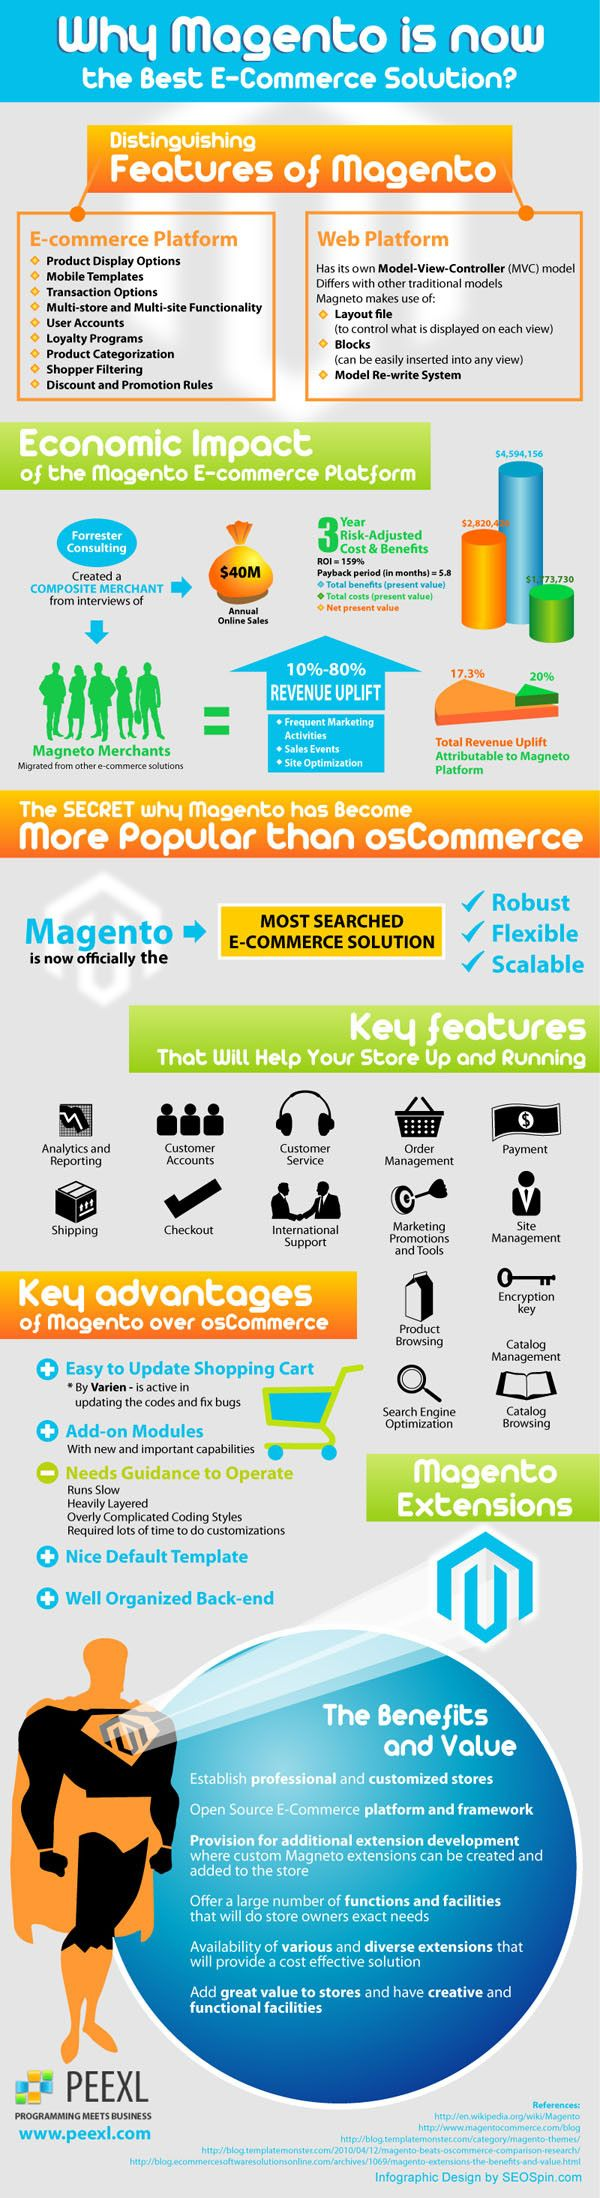 magento infographic Why Magento Is Now The Best E Commerce Solution [Infographic]